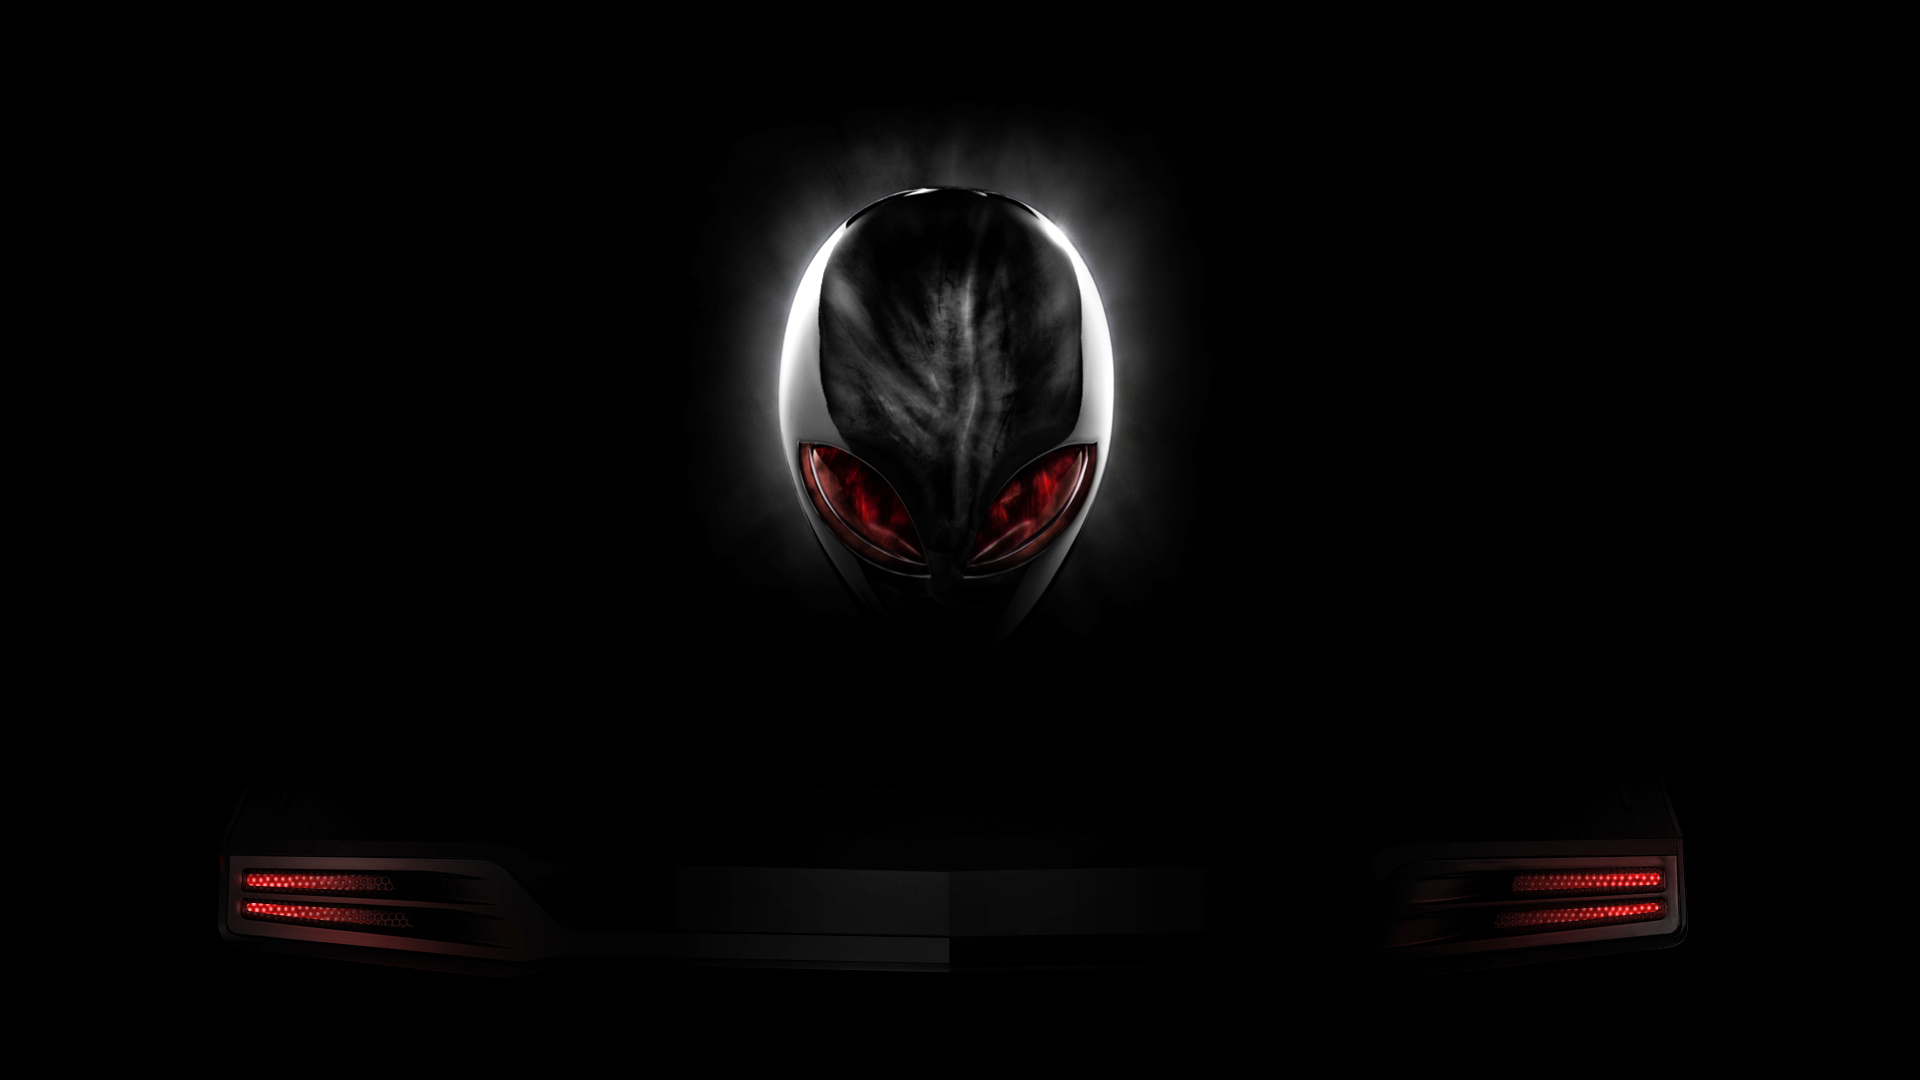 alienware red eyes logo black background hd 1920x1080 1080p wallpaper 1920x1080